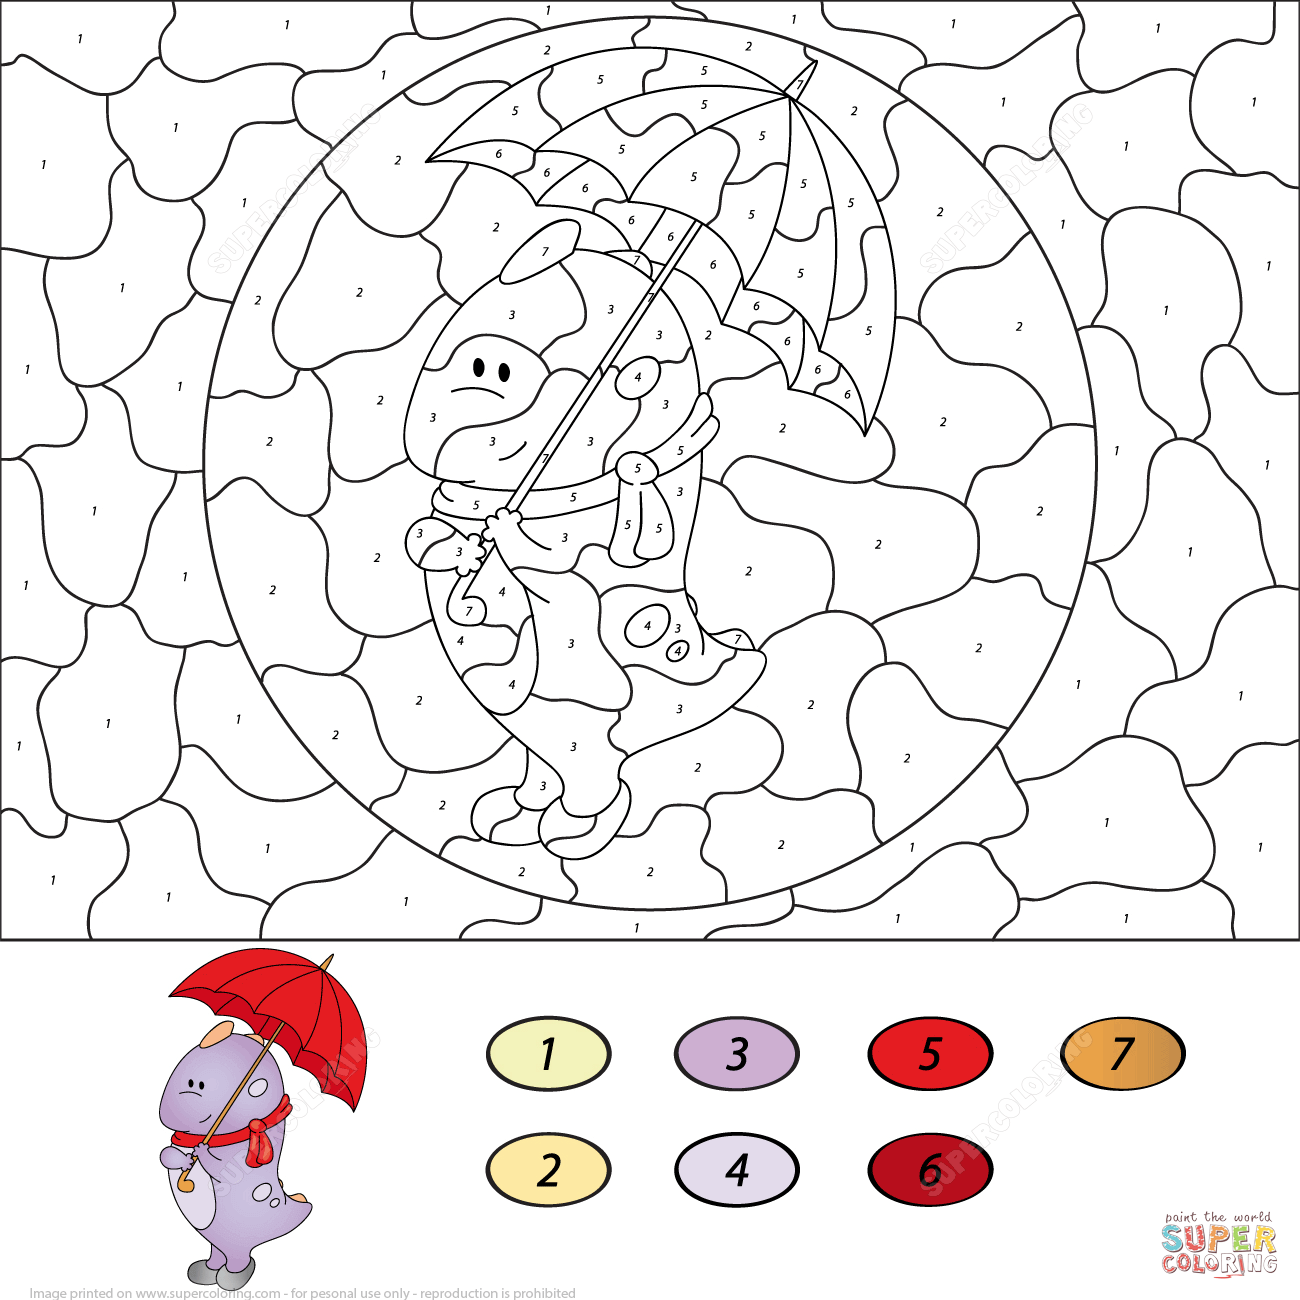 Cute Dragon Wiht Umbrella Color By Number Coloring Page